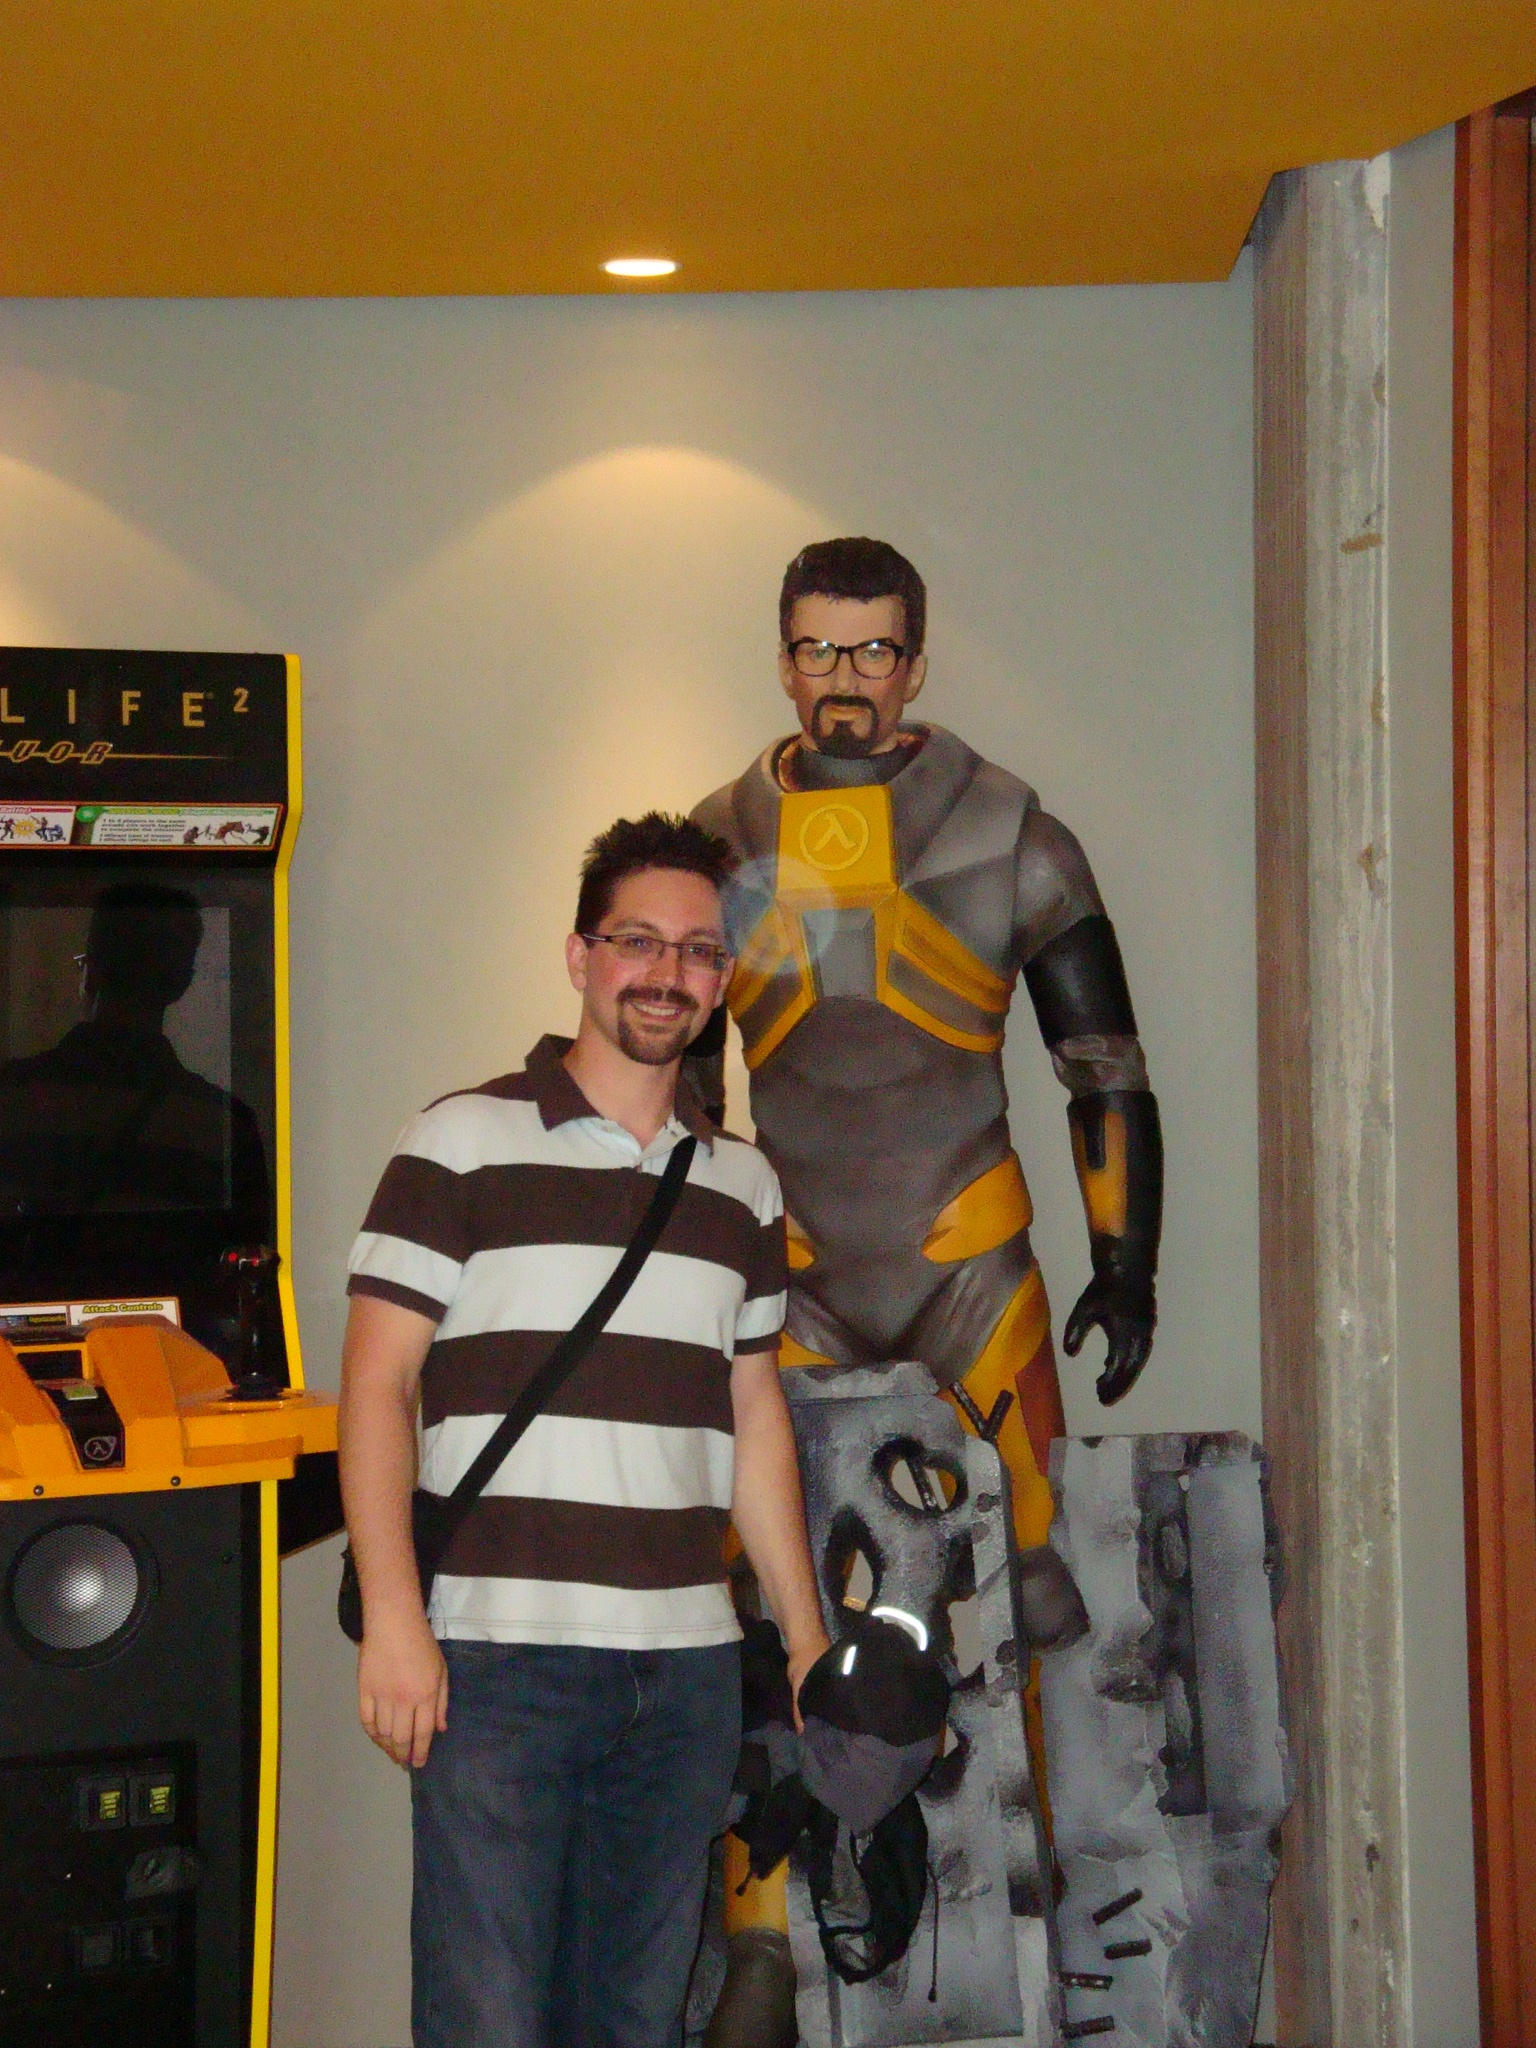 Ben with a very different haircut, standing by Gordon Freeman at Valve